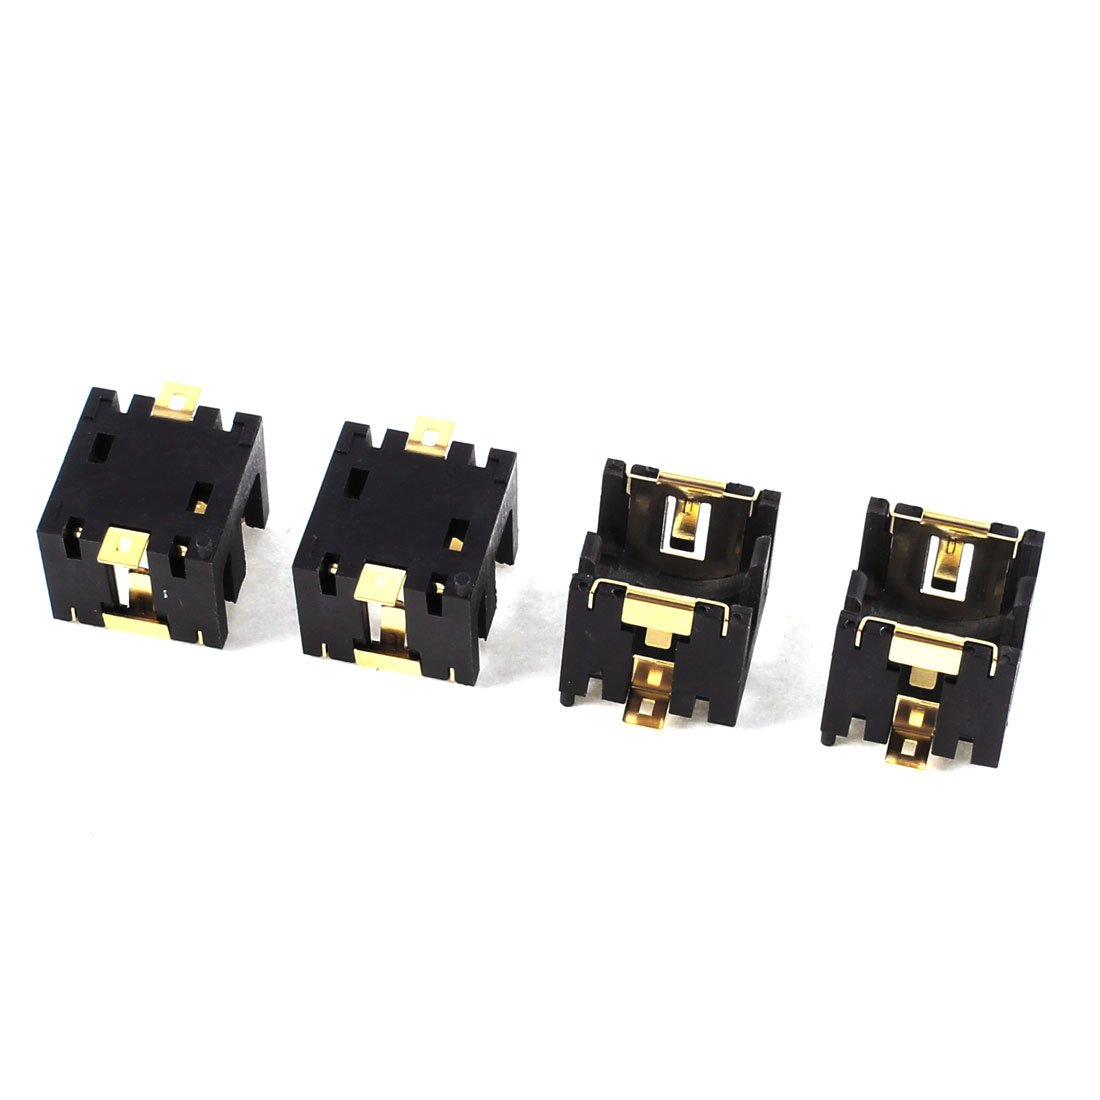 4 Pcs Black Plastic <font><b>Button</b></font> Coin <font><b>Cell</b></font> <font><b>Battery</b></font> Socket <font><b>Holder</b></font> for 2 x AG13/LR44